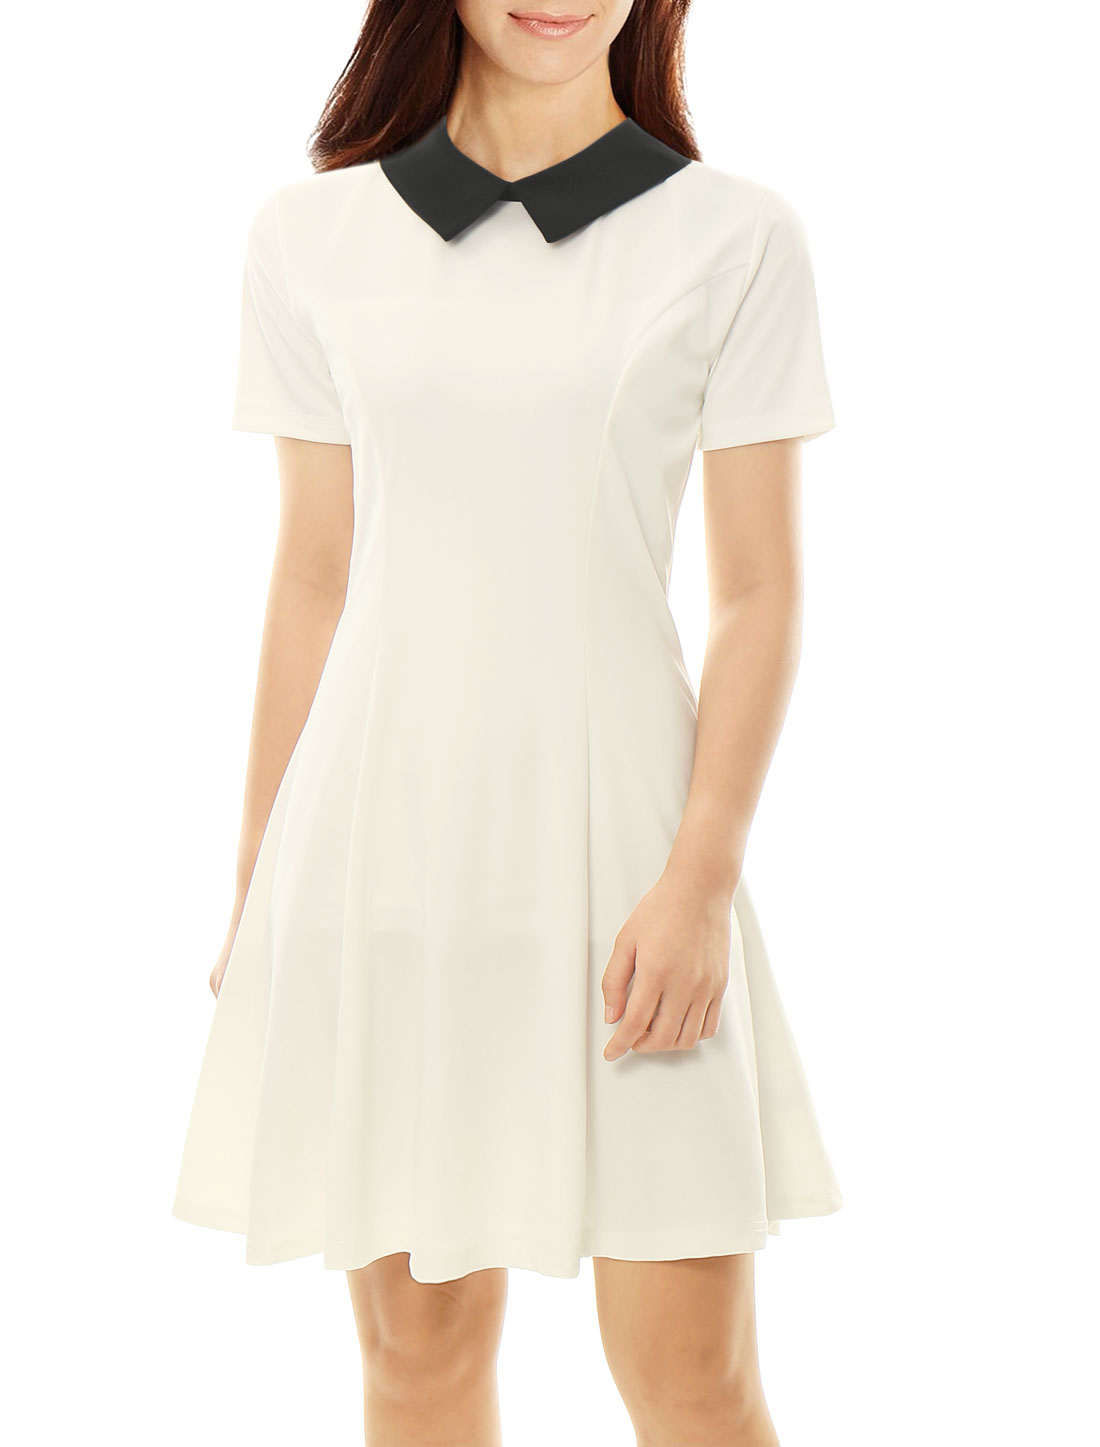 Women Contrast Doll Collar Short Sleeves Flare Dress White XL